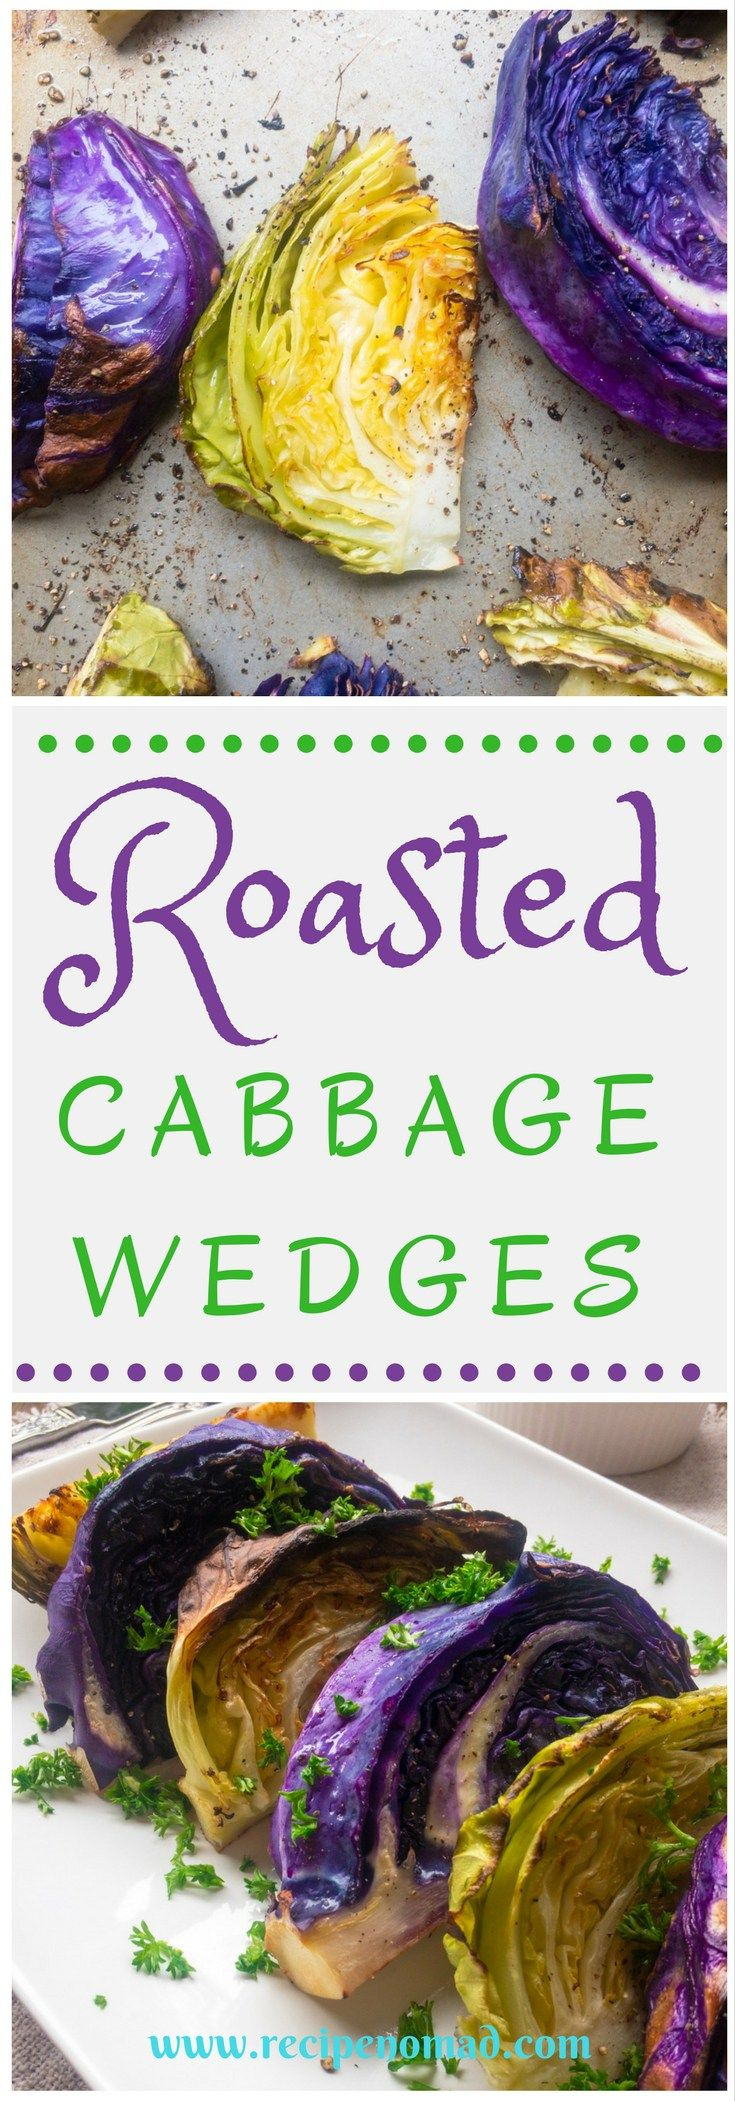 Roasted Cabbage Wedges   Recipe Nomad  Simply Roasted Cabbage Wedges are a healthy way to enjoy cabbage. Roasting mellows out the cabbage's strong flavor, leaving you with a tender and slightly sweet flavor.